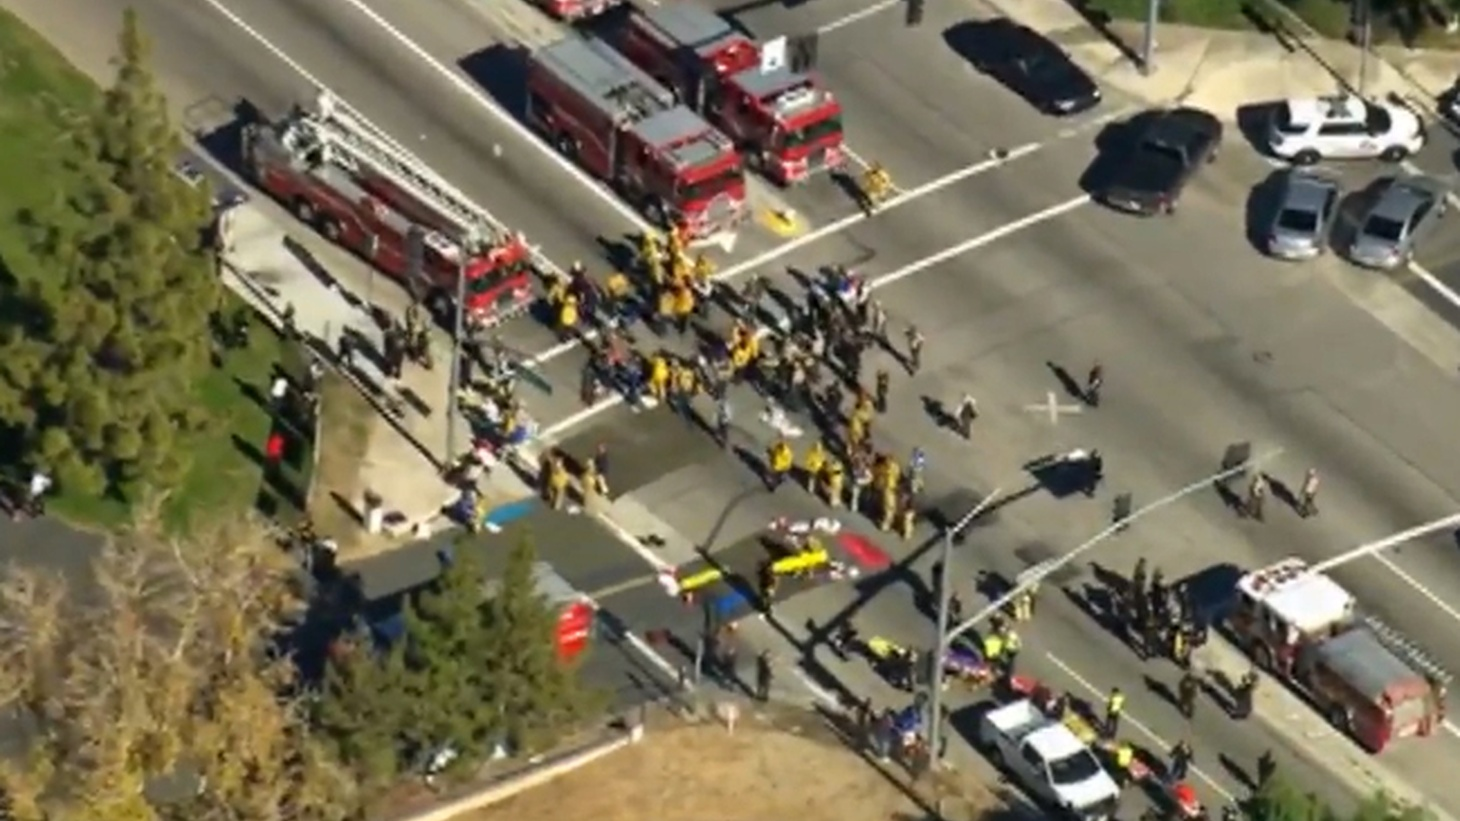 Fourteen people were shot to death this morning and 17 others were injured at a holiday party for state health workers at the Inland Regional Center in San Bernardino. Three shooters escaped in a black SUV.